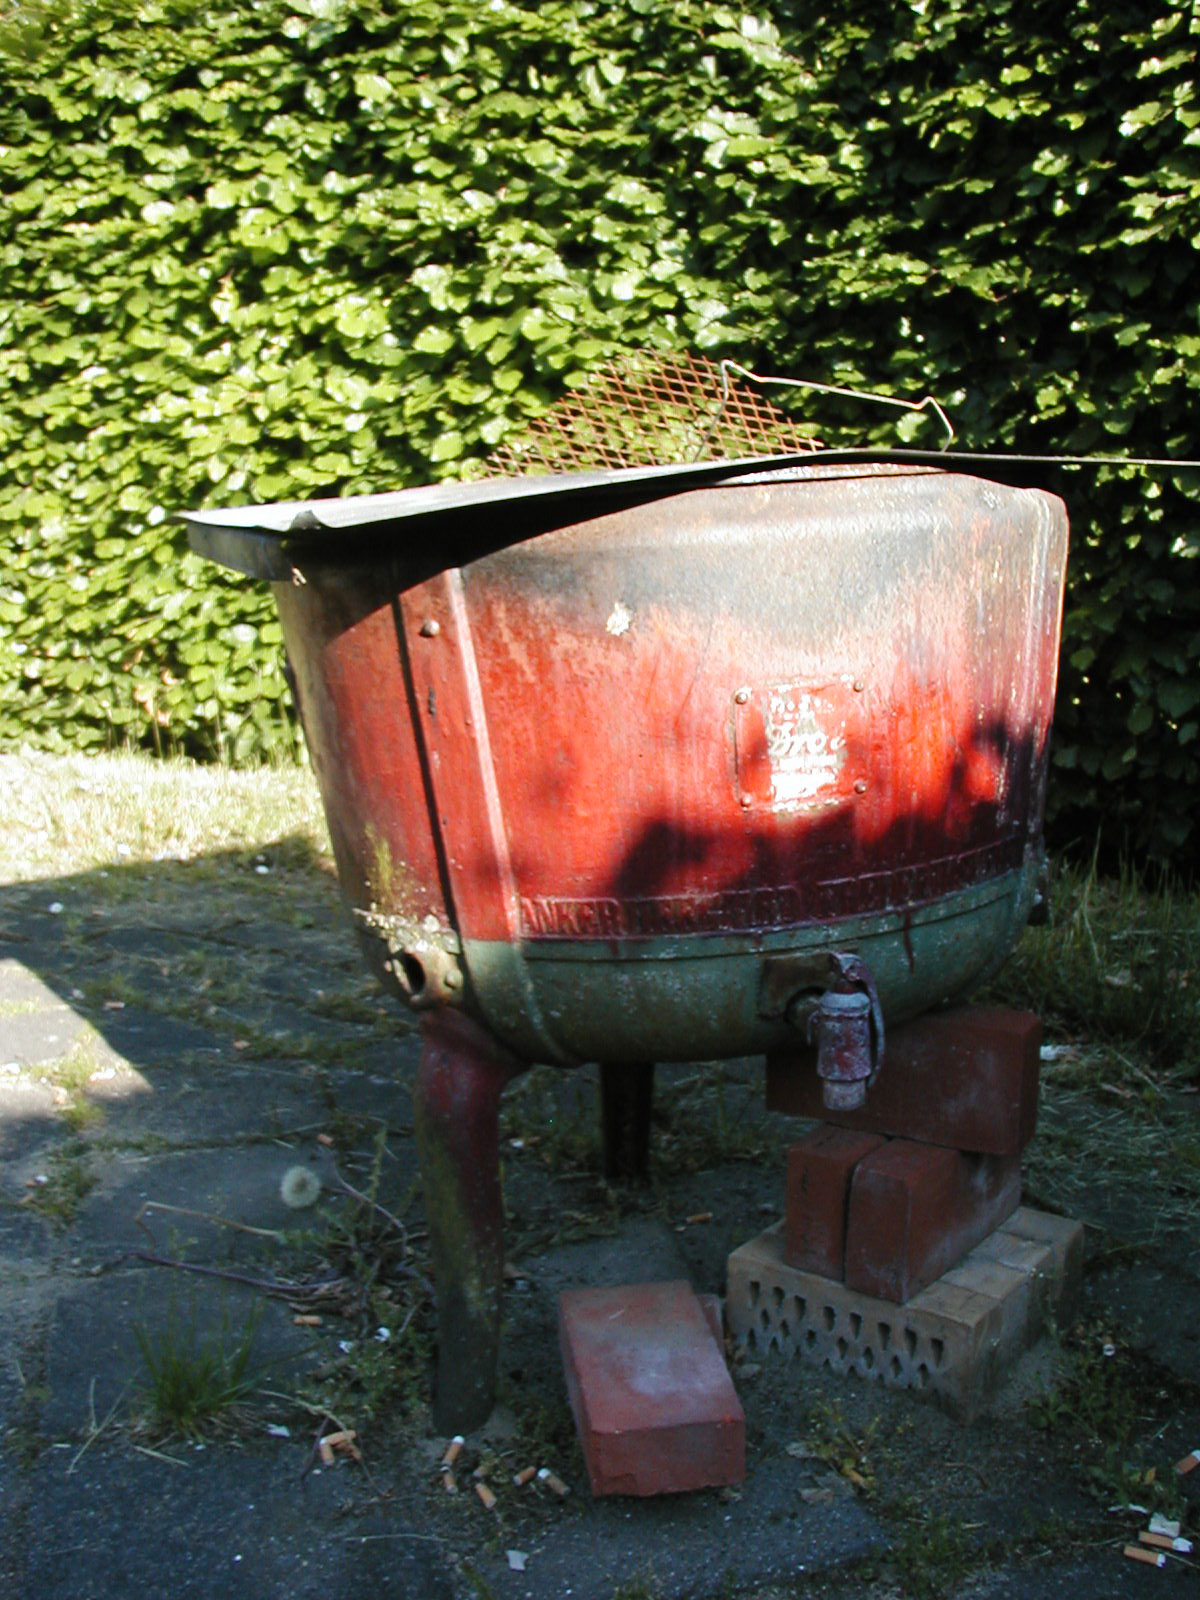 Old watertank used as a barbeque, Barbeque, Bricks, Burned, Cook, HQ Photo